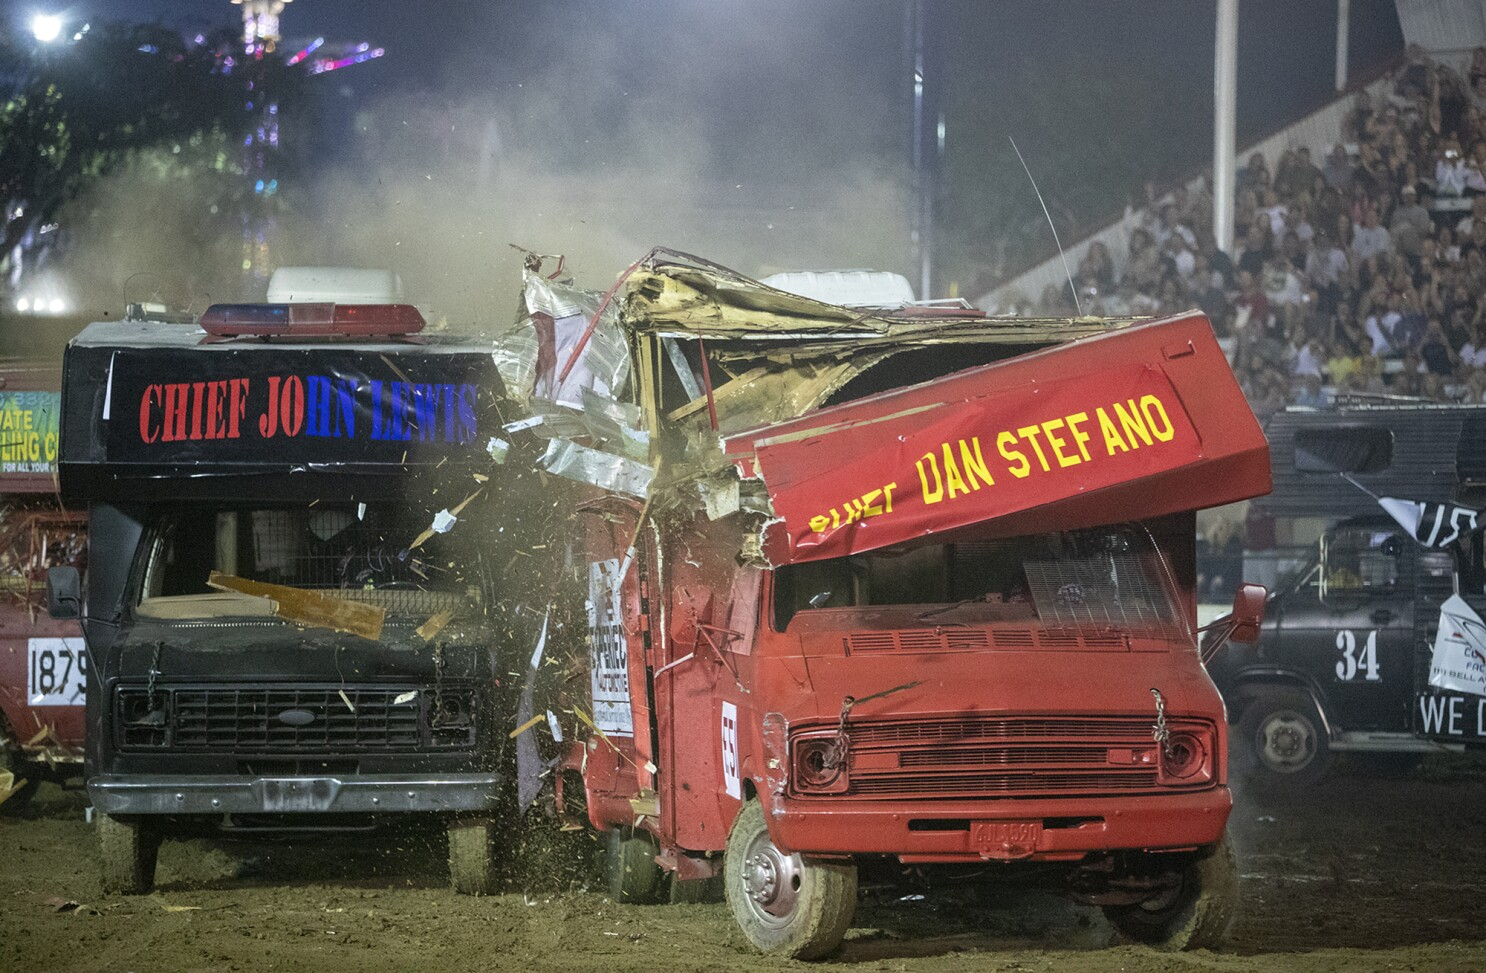 It's Motorhome Madness as police and fire chiefs crash the O.C. Fair for demolition derby